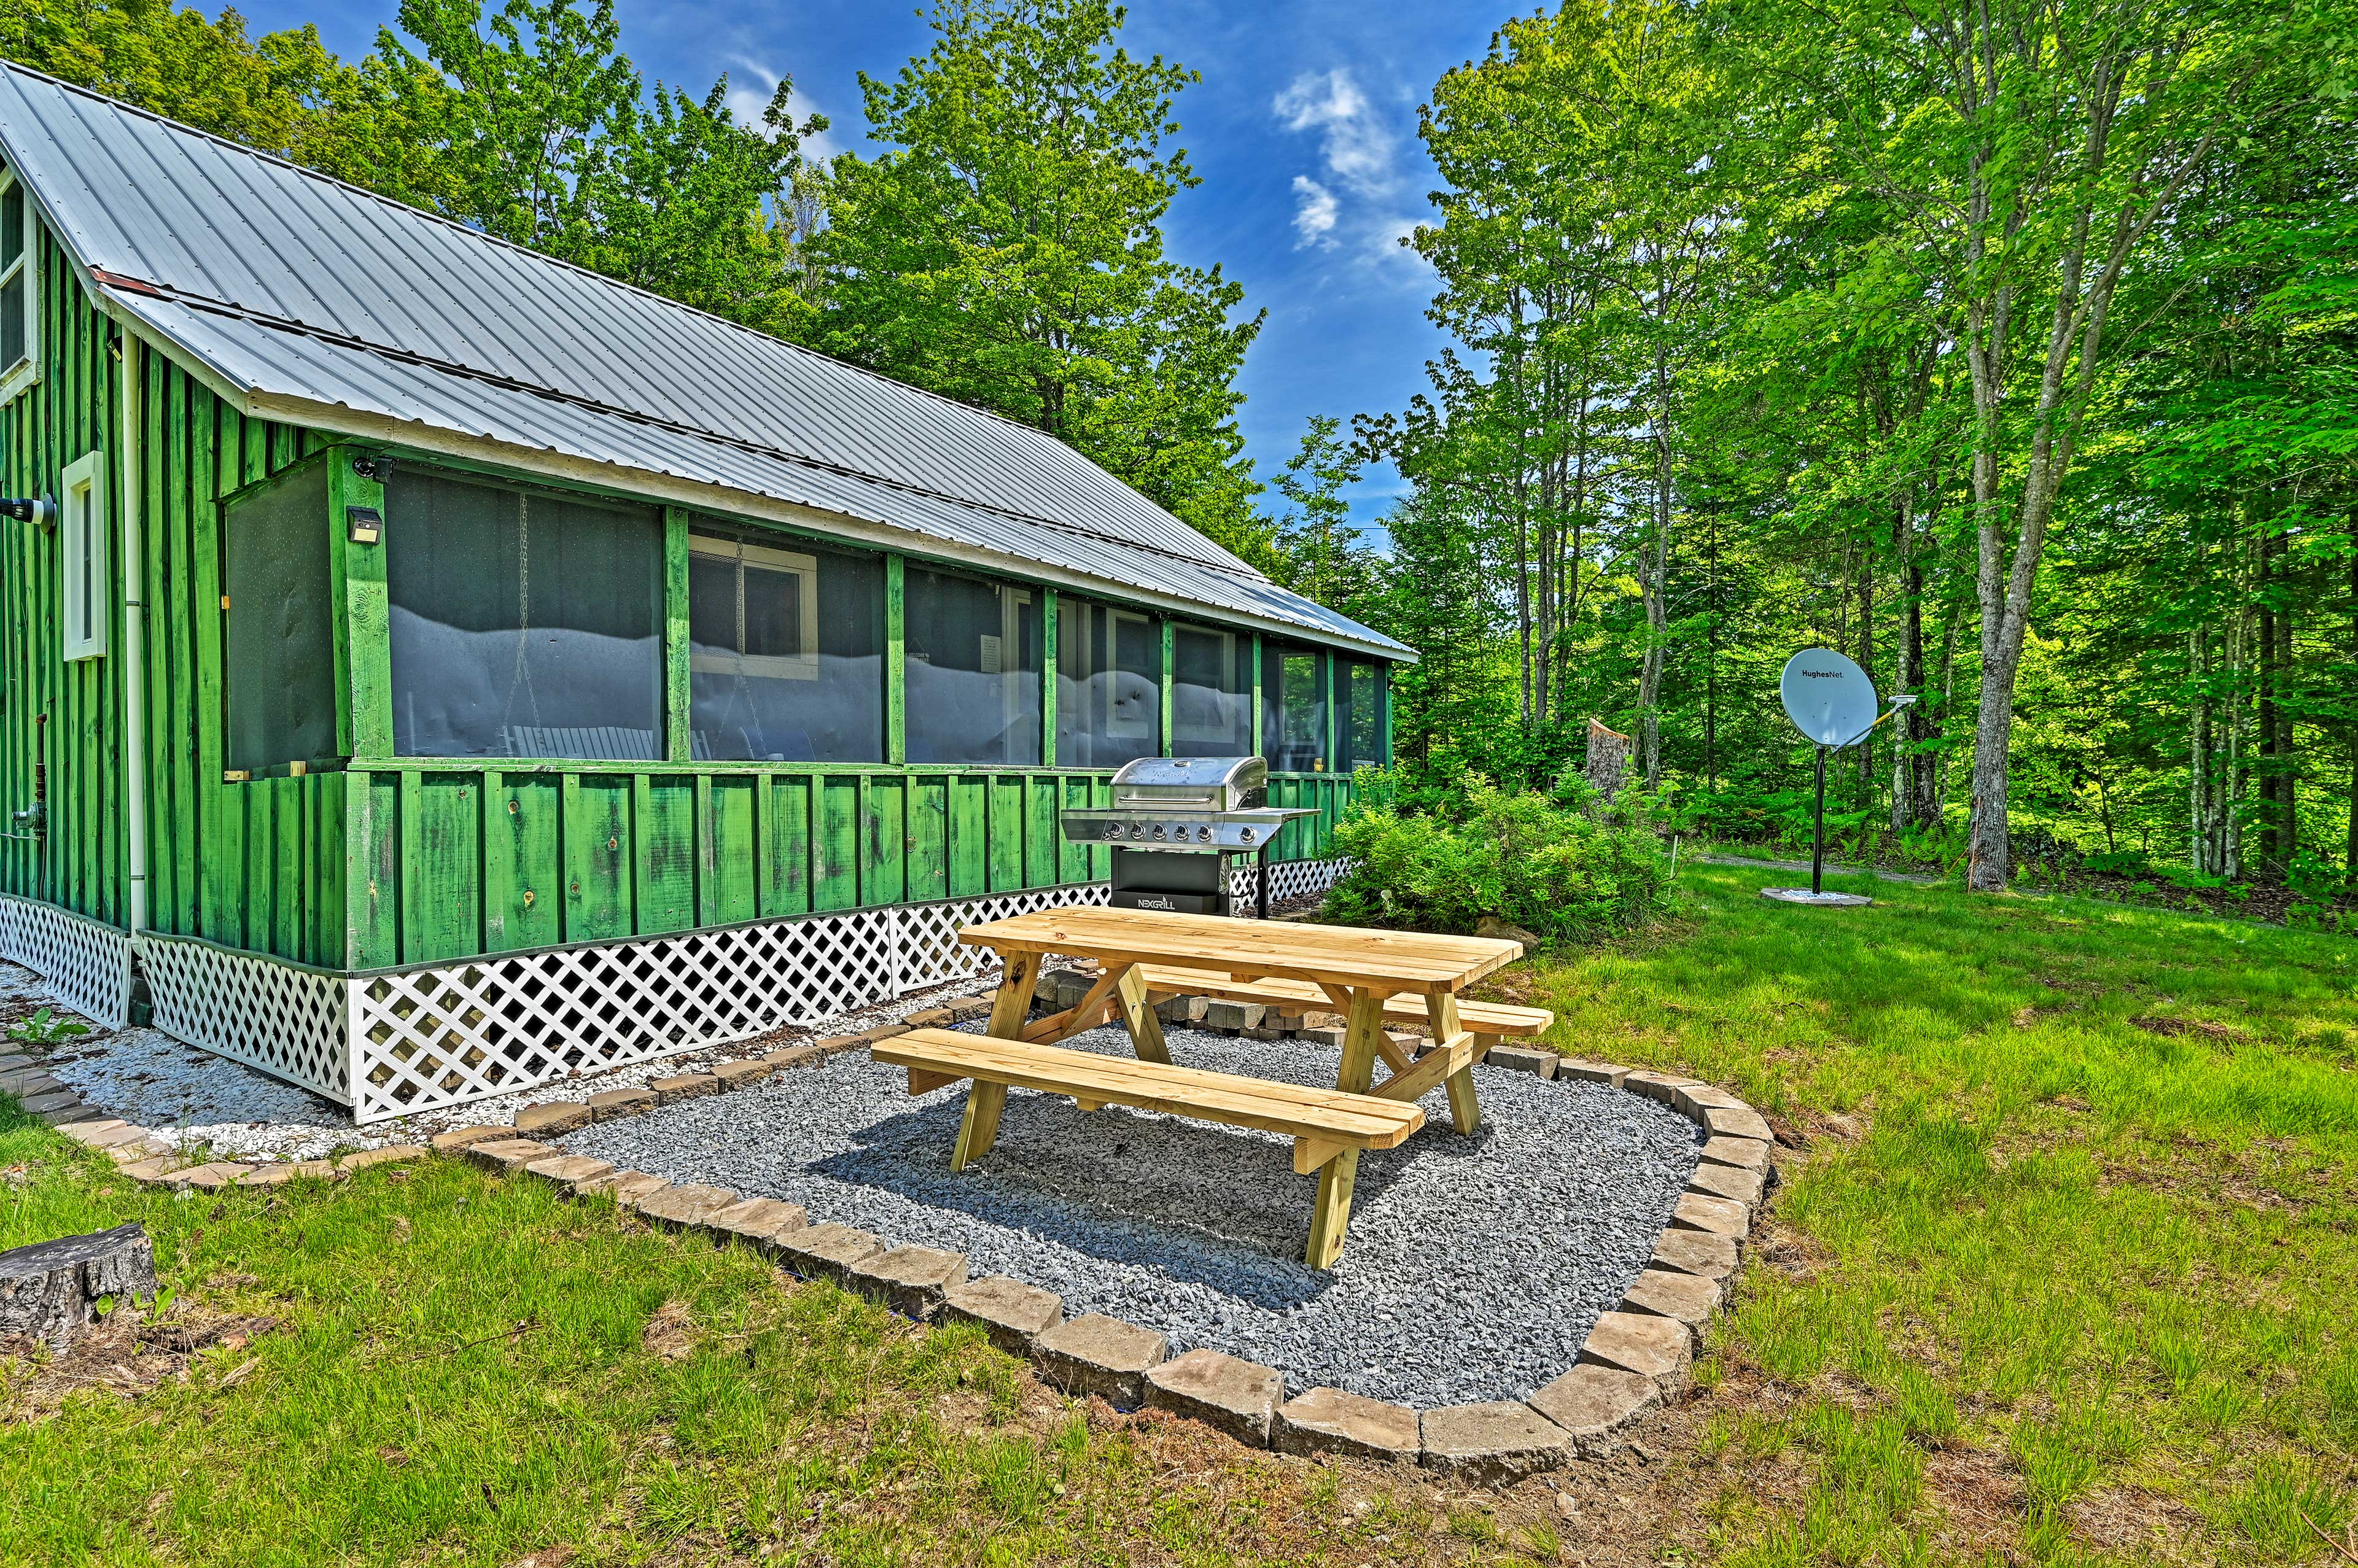 Dine al fresco at the picnic table beside the cabin.